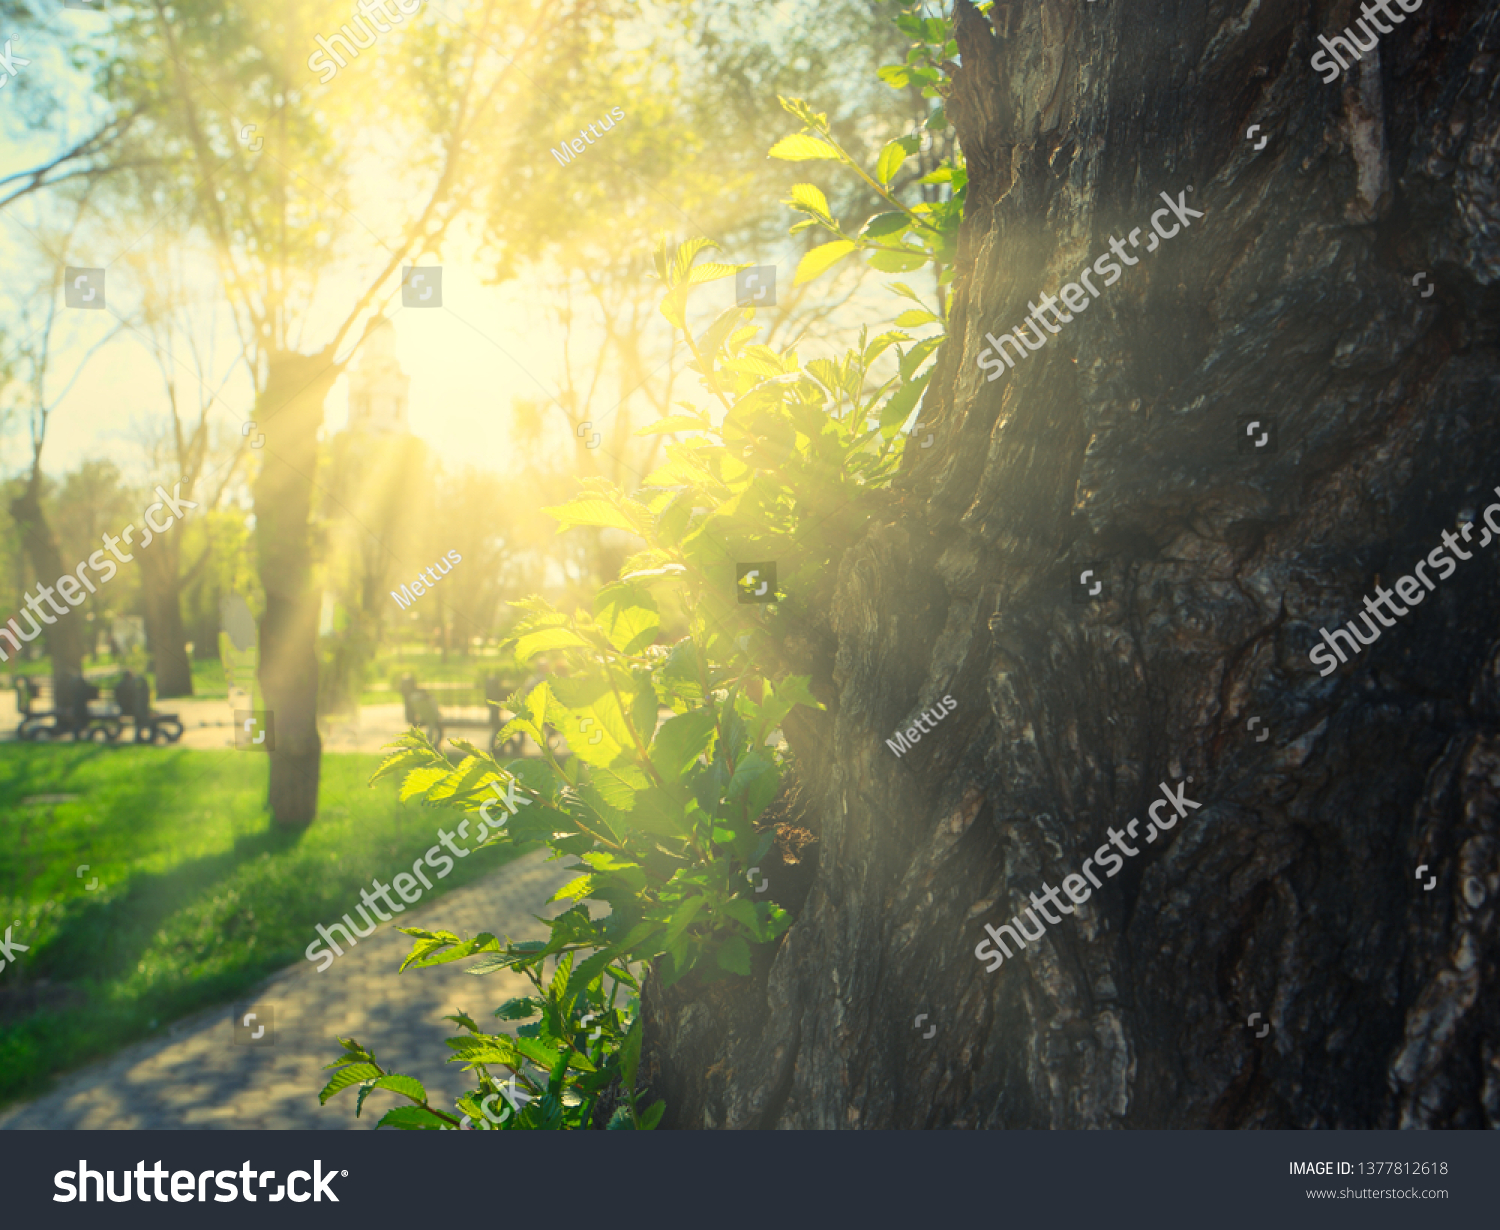 stock-photo-sun-shining-over-tree-trunk-